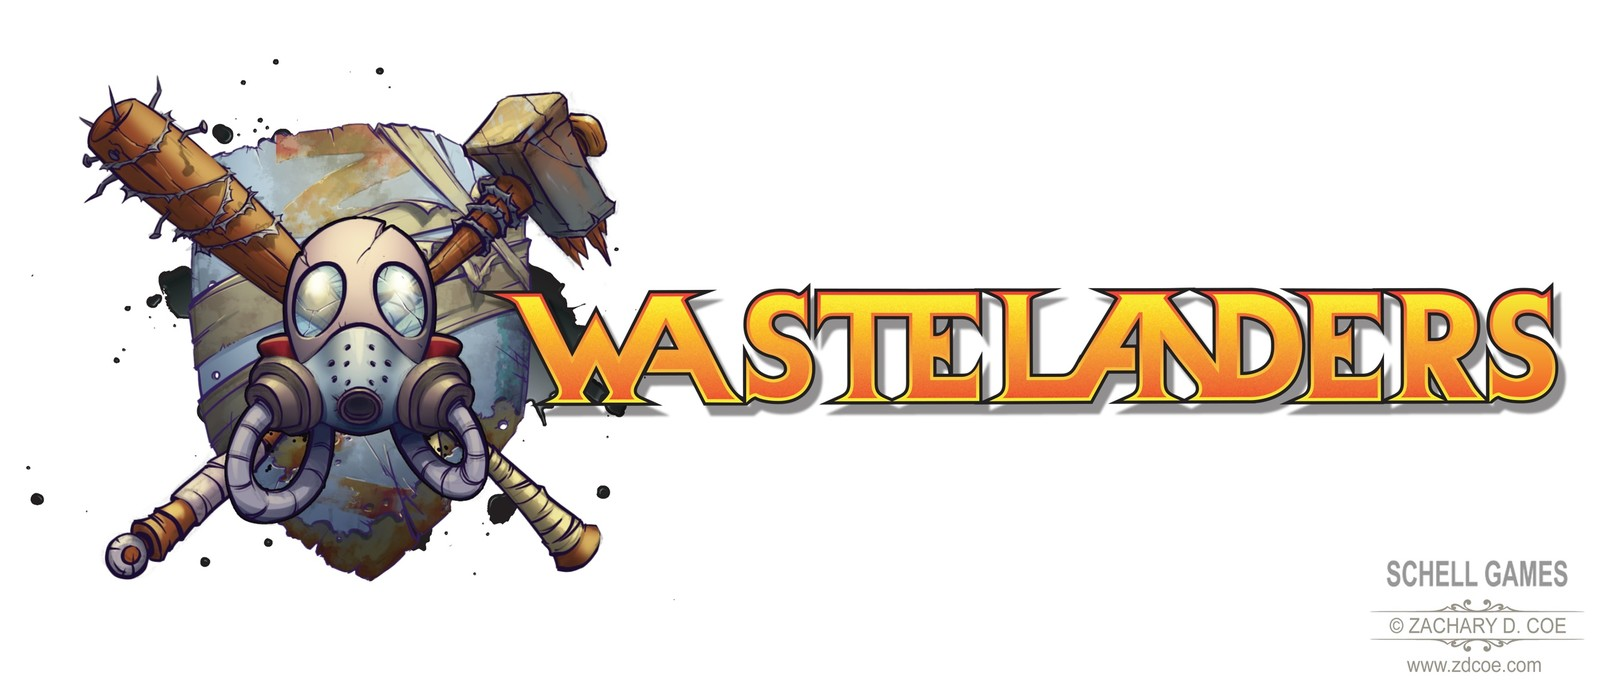 WASTELANDERS LOGO horizontal final by Zachary D. Coe